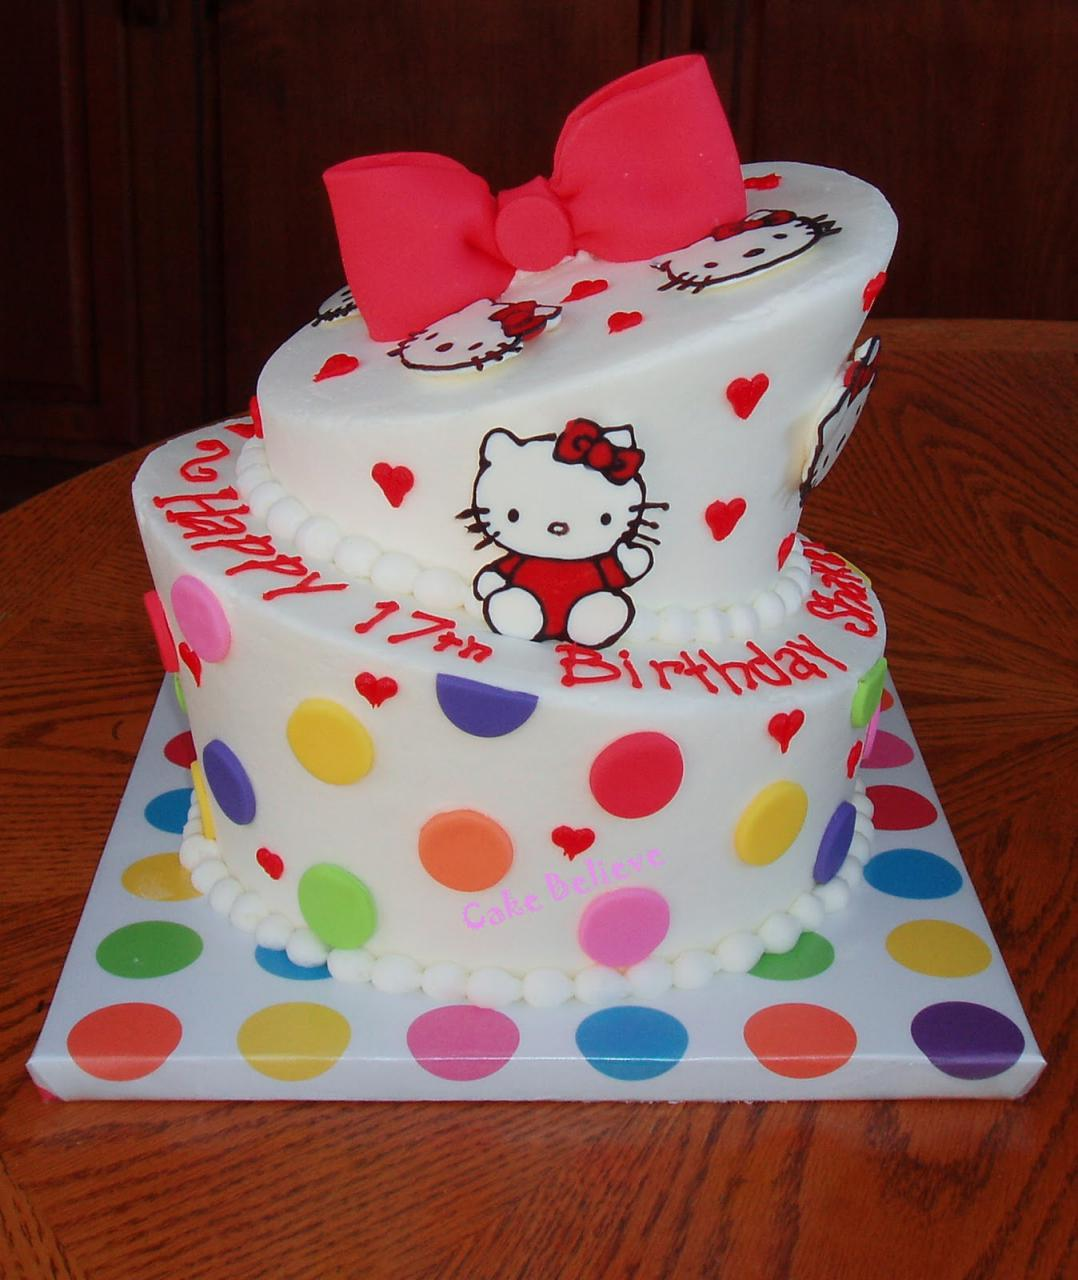 30 Cute Hello Kitty Cake Ideas and Designs - EchoMon